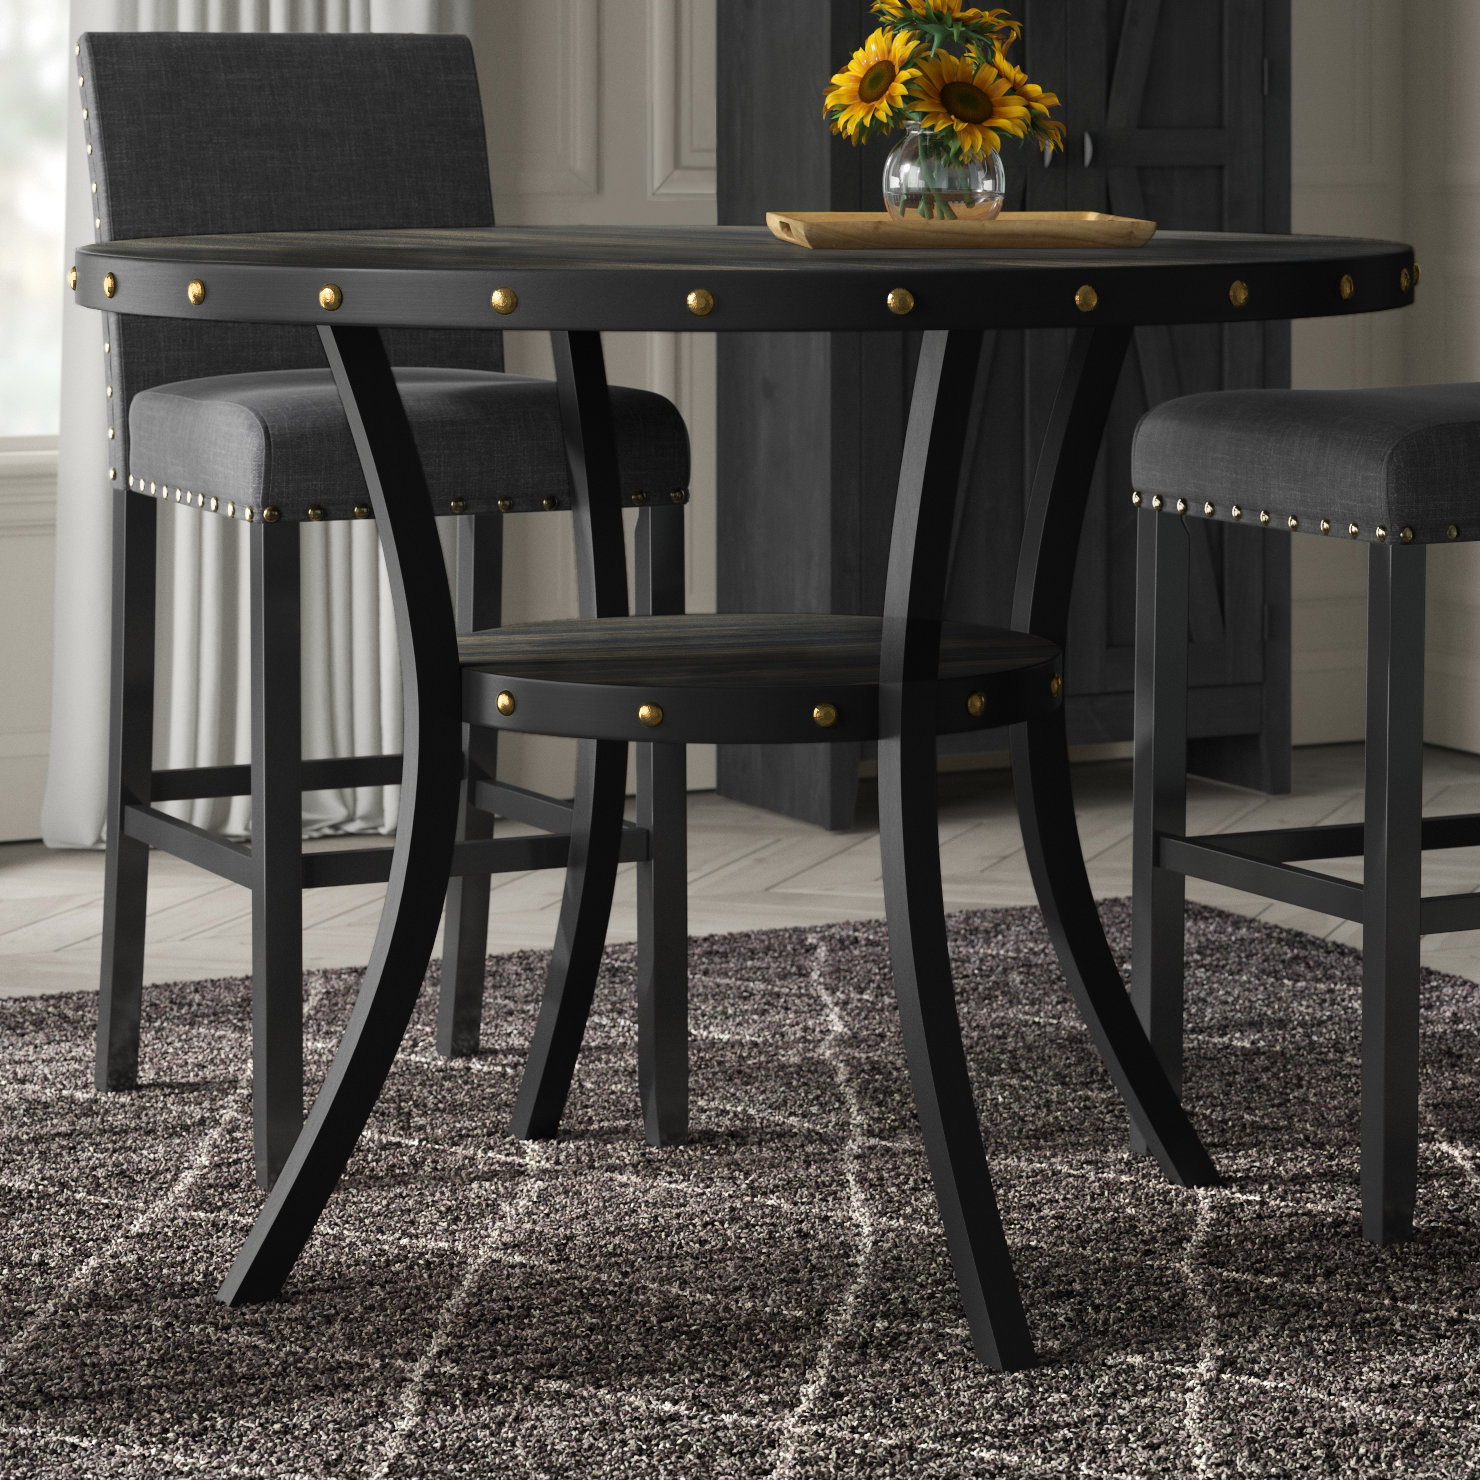 Greyleigh Mulberry 5 Piece Dining Set In 2019 Products Counter With Recent Mysliwiec 5 Piece Counter Height Breakfast Nook Dining Sets (View 17 of 20)